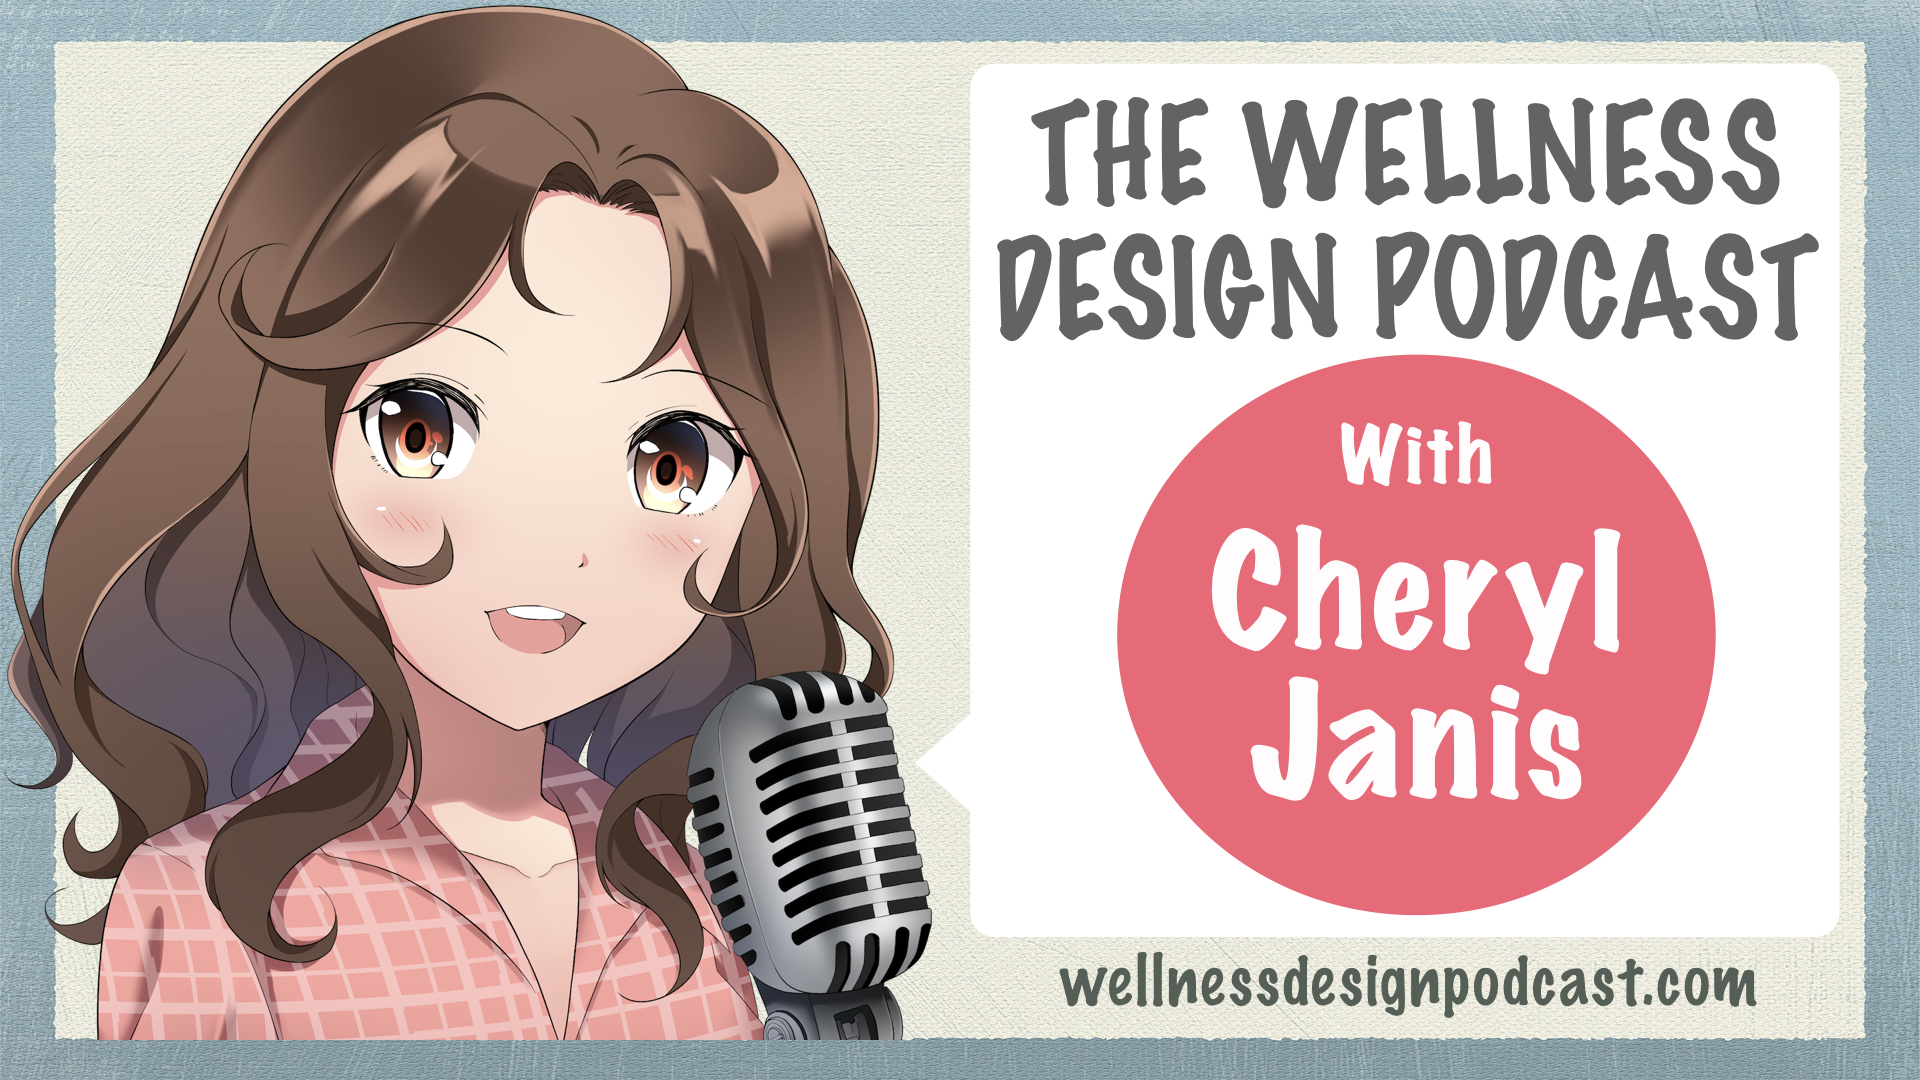 Thanks For Listening! - Healthcare interior designer Cheryl Janis invited me to join her on the Wellness Design Podcast, and we had a great conversation about the role of beautiful art in healthcare spaces. If you'd like to listen again, or check out any of her other episodes, just click the button!